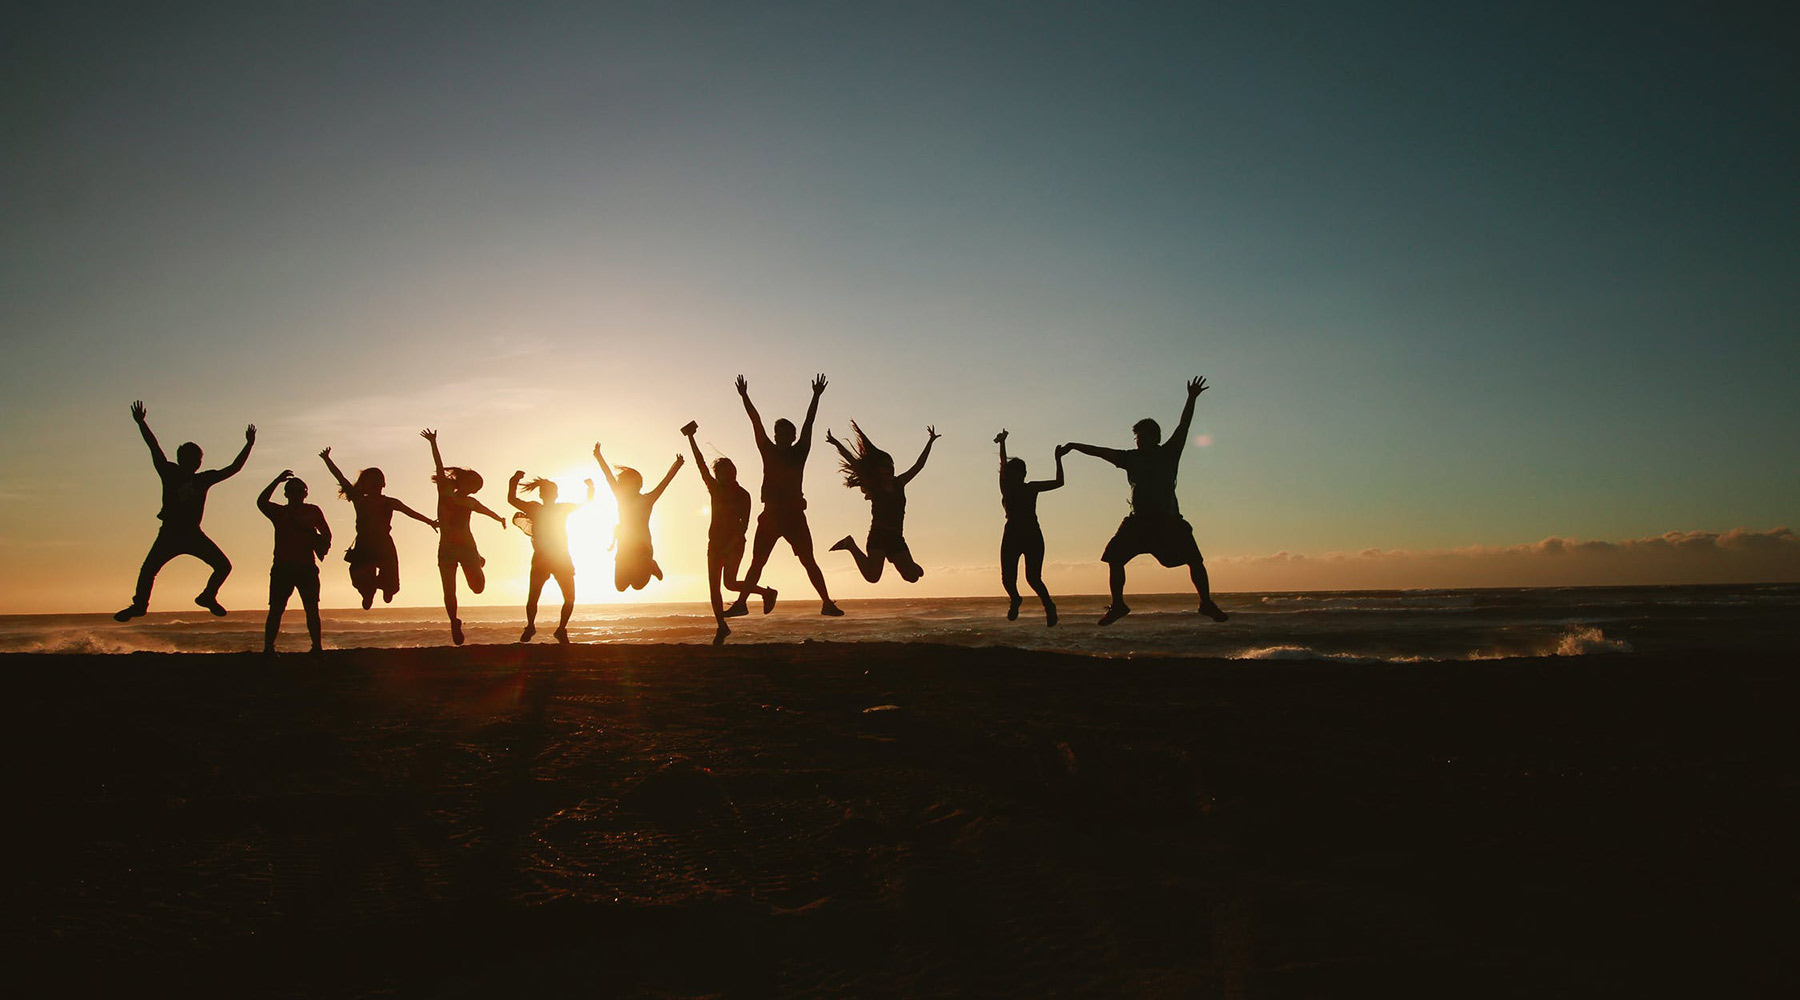 Sunset jump group picture